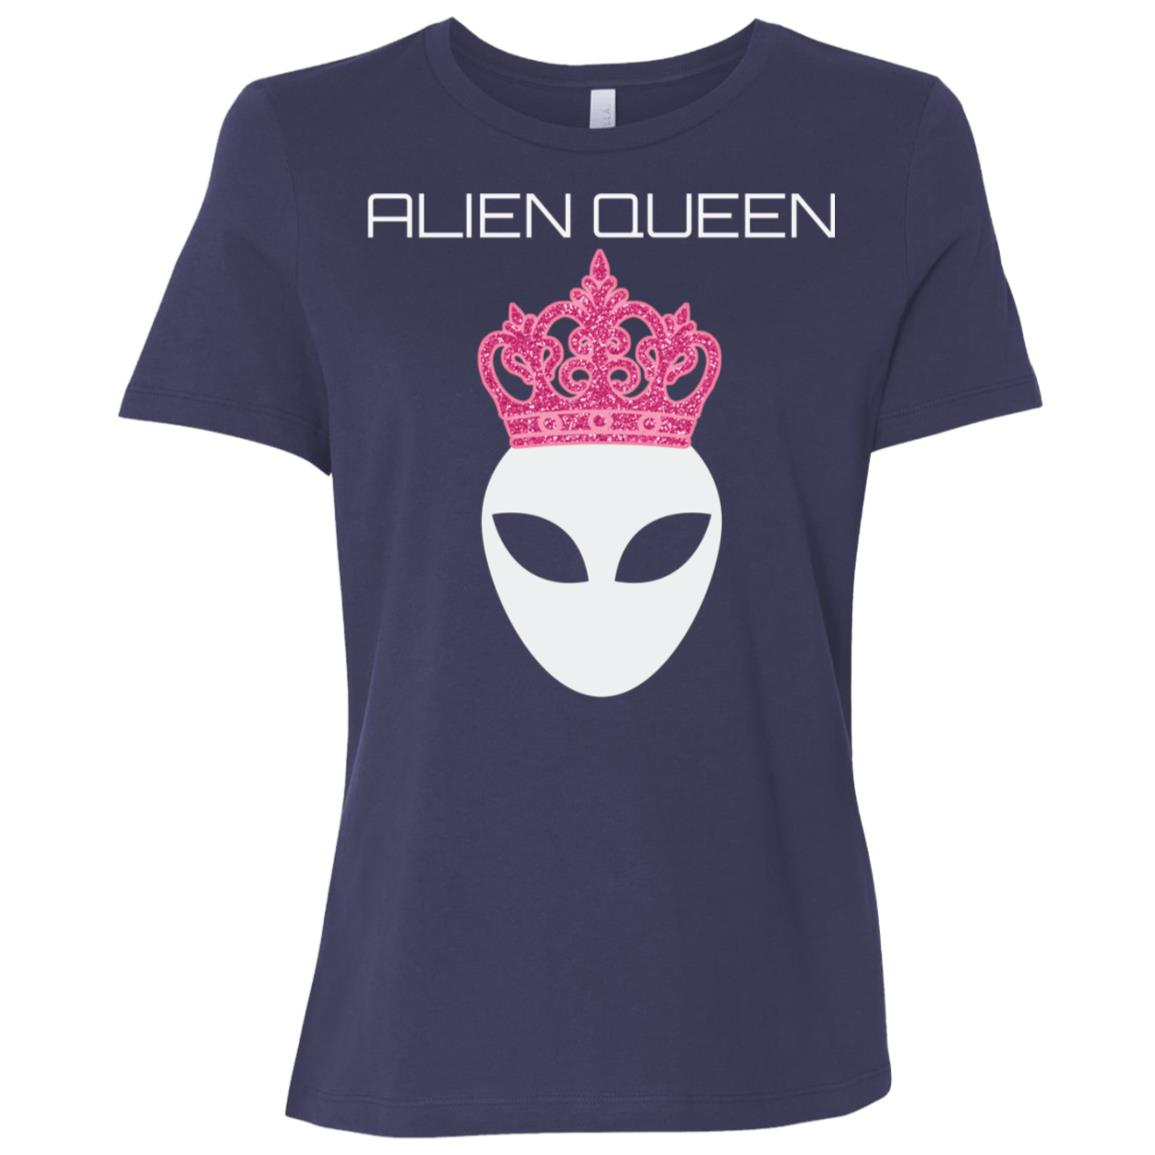 Funny Alien Queen Sweatshirt Ufo Abduction Gift Geeky Women Women Short Sleeve T-Shirt